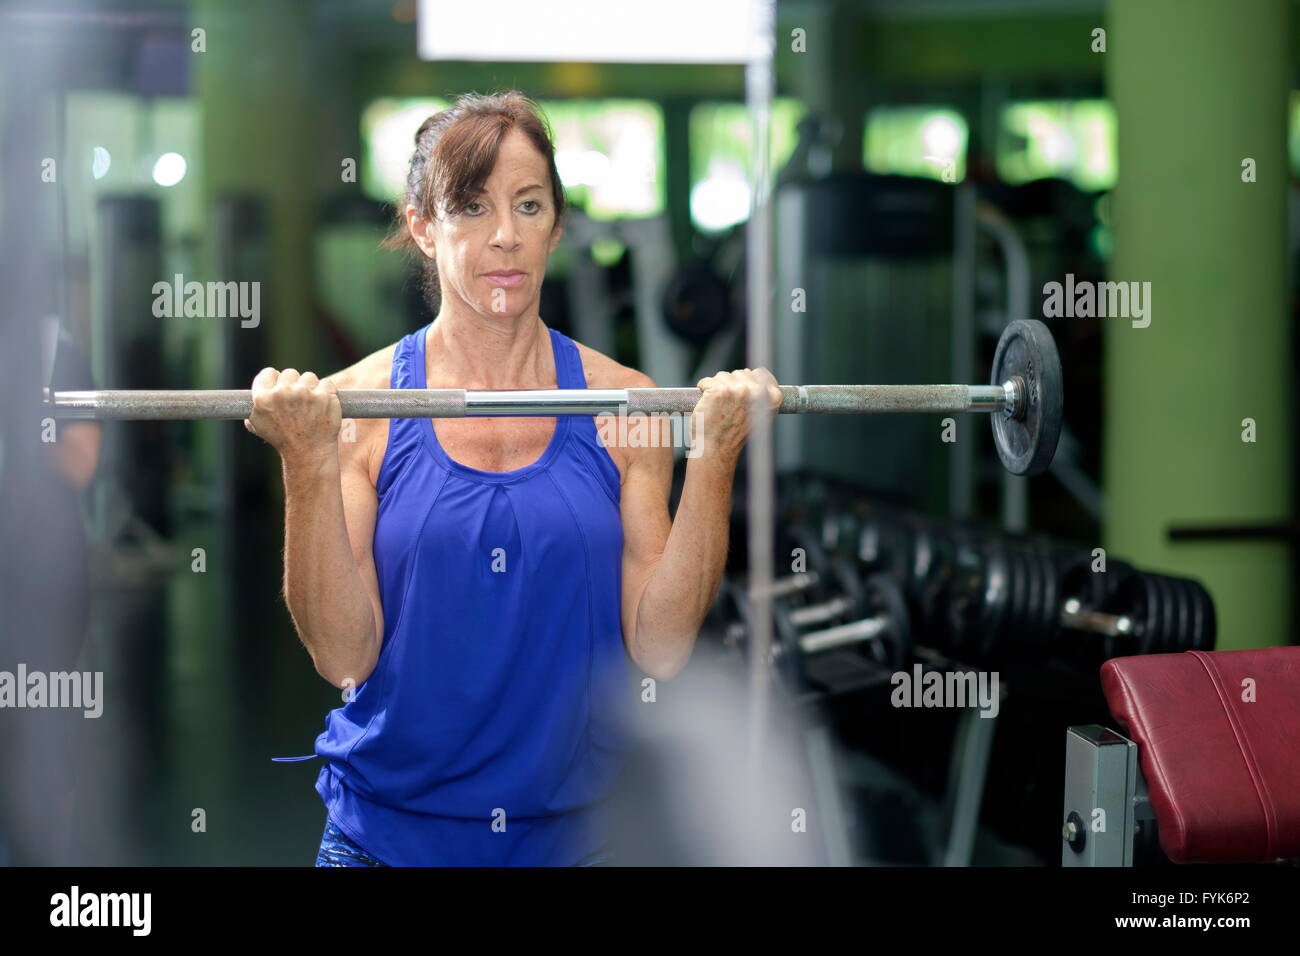 Retired woman working out with weight handle bar in front of mirror at the gym - Stock Image